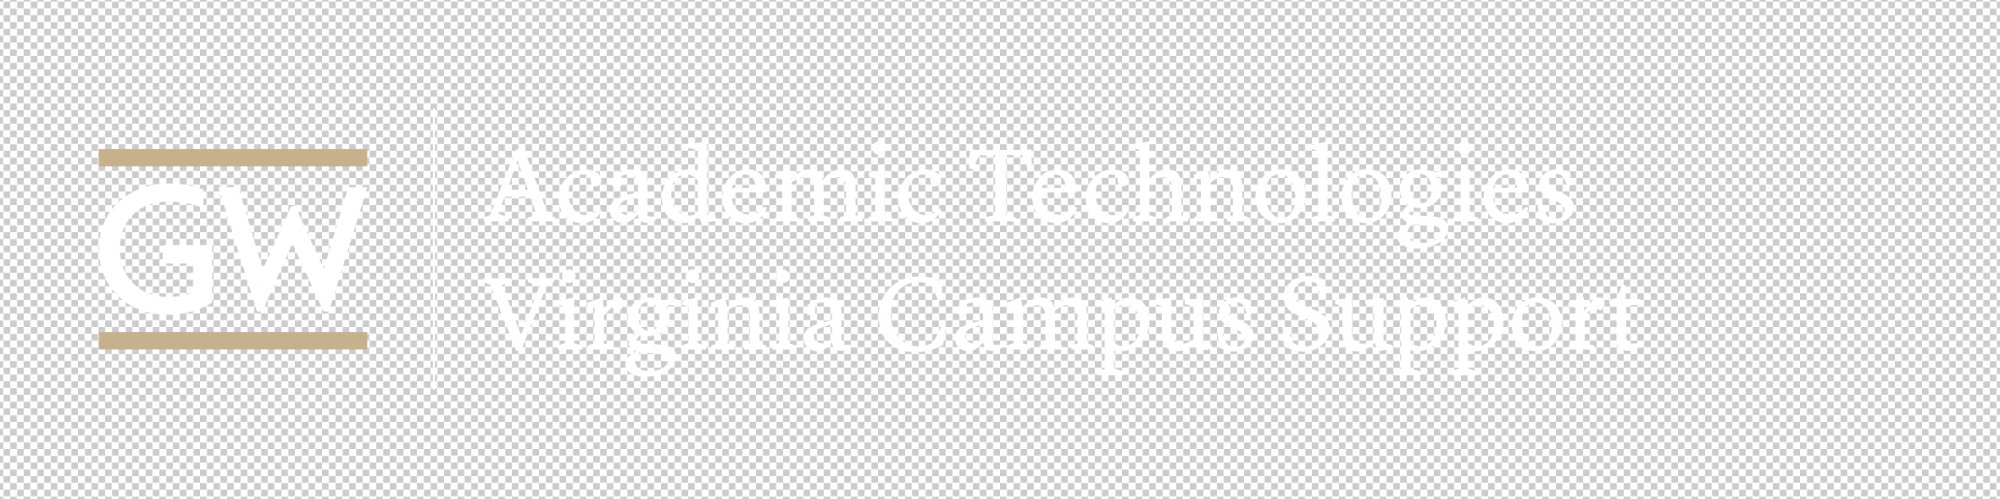 AT VSTC Support logo buff and white